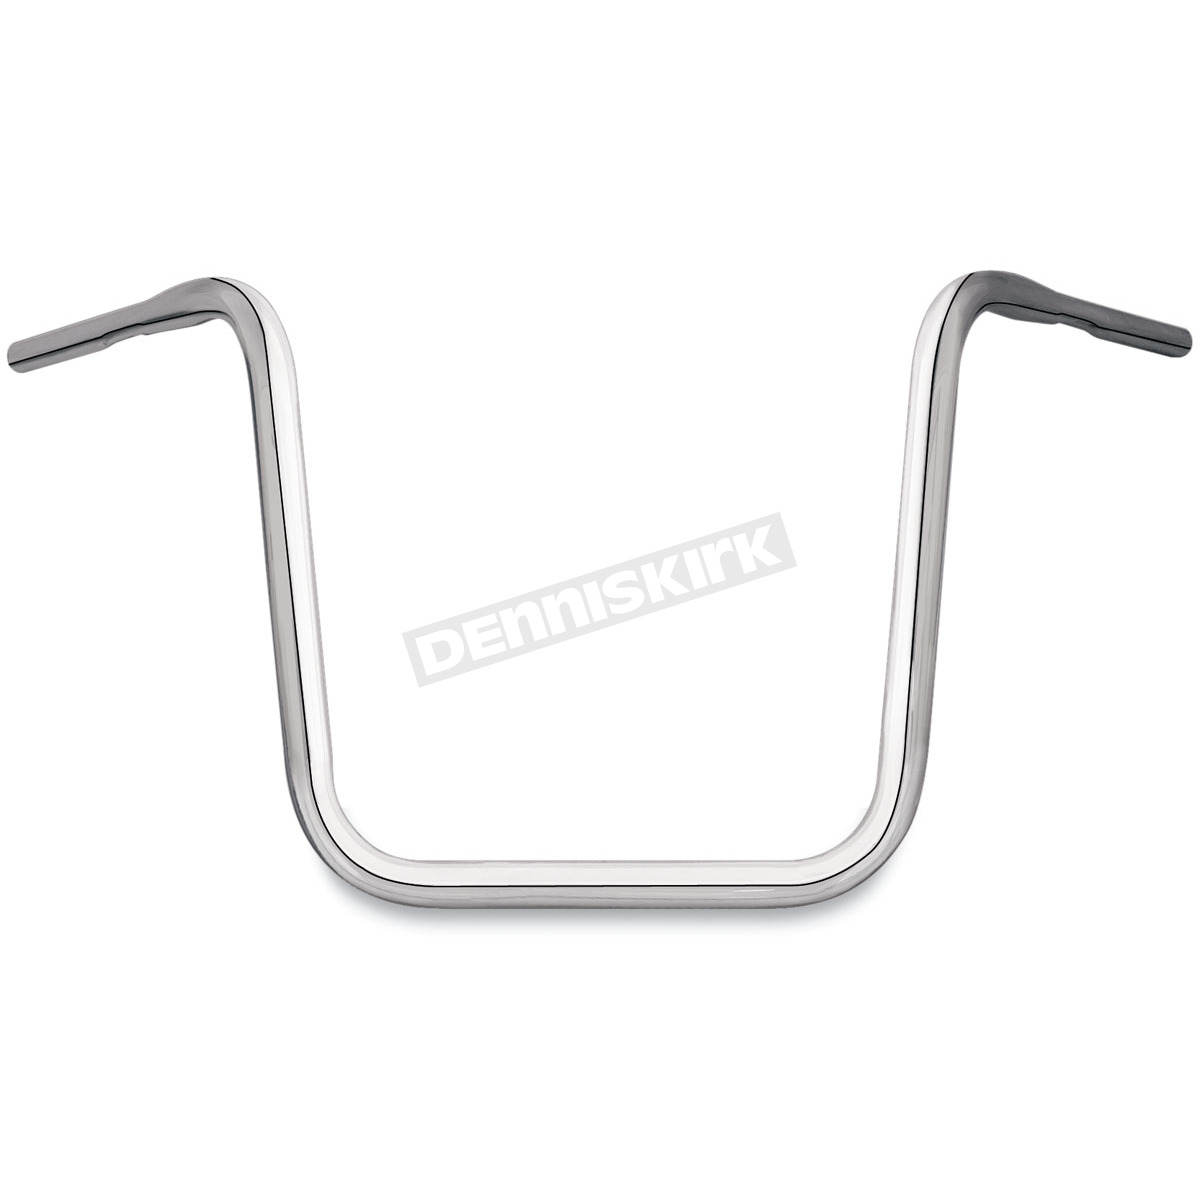 LA Choppers Riser Extensions For 1 1//2 Handlebars 1 1//2 Inch Rise Chrome